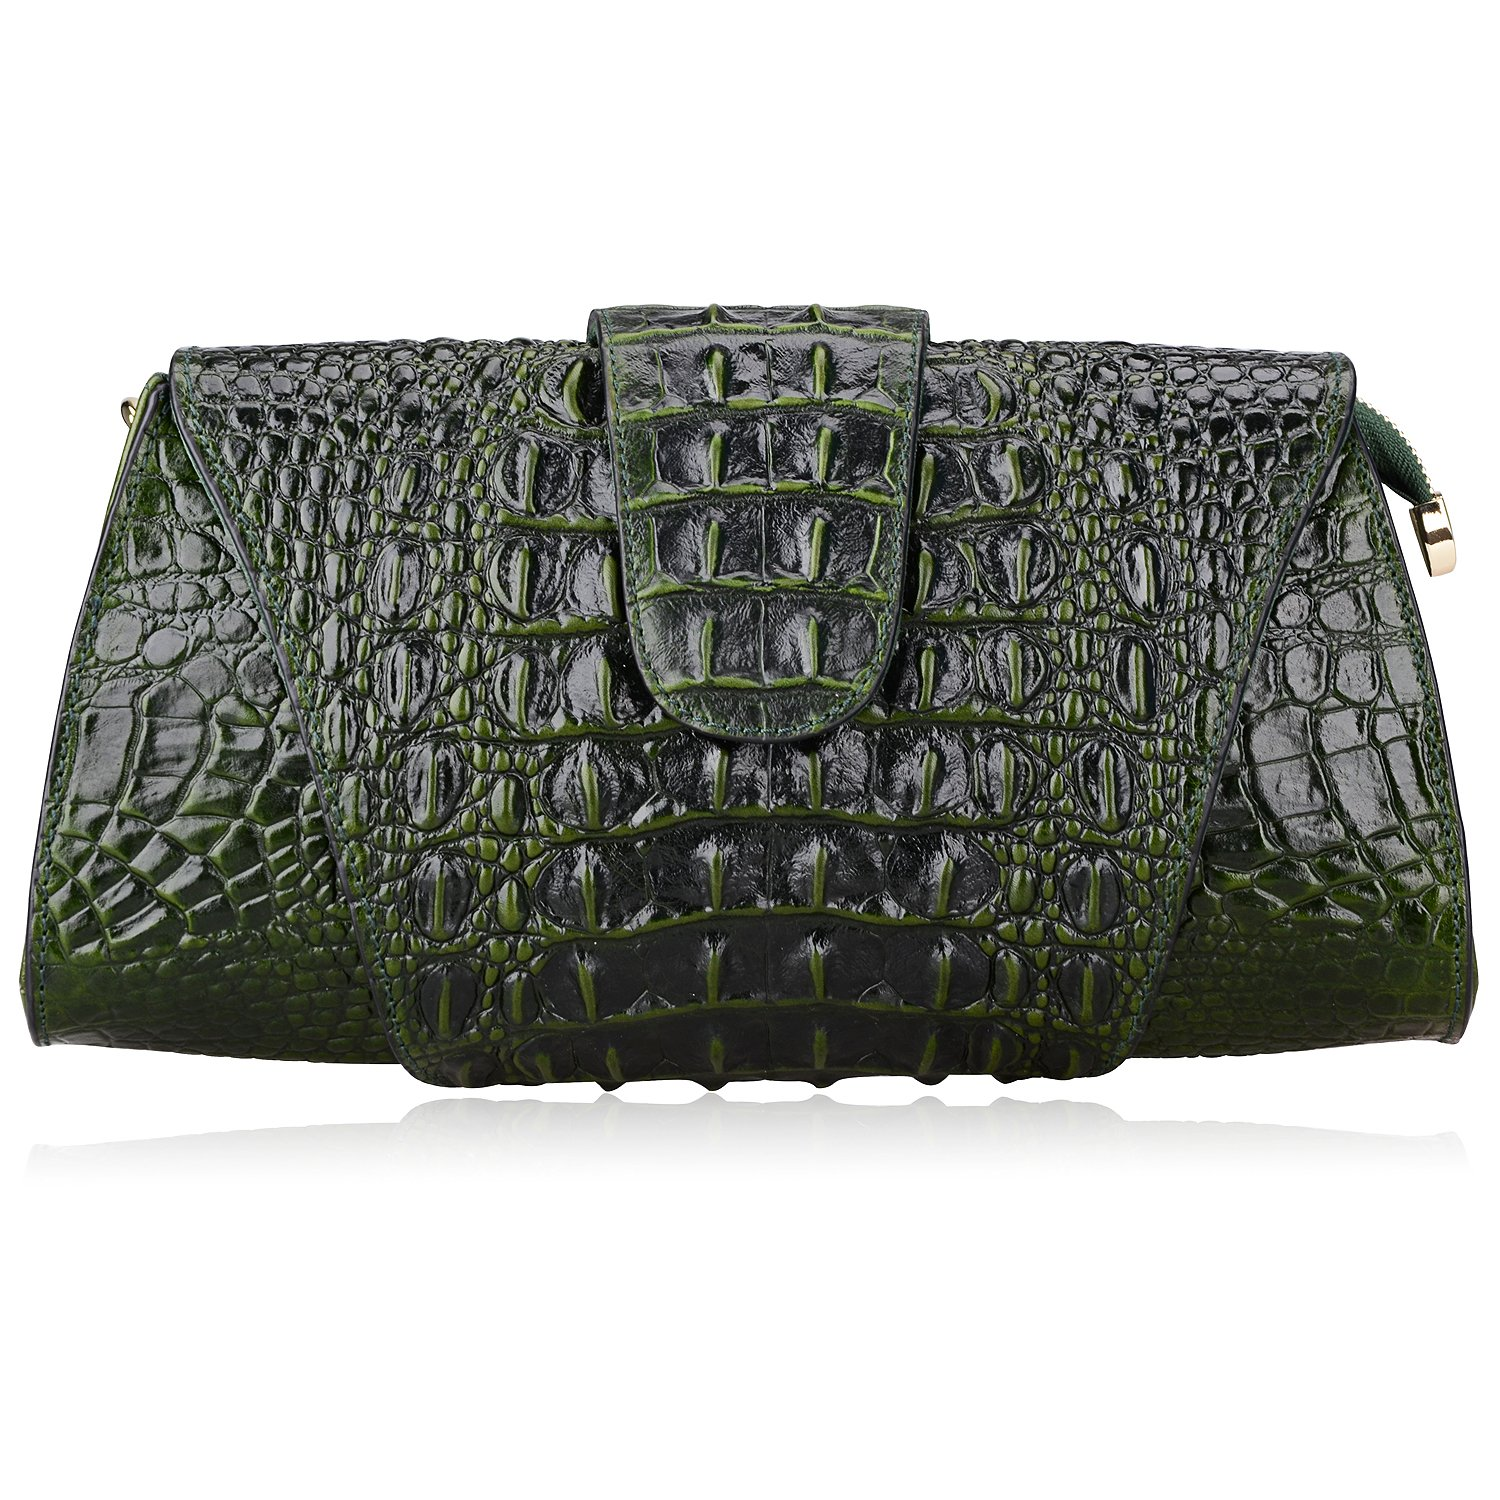 Pijushi Croco Embossed Leather Clutch Bag Cross Body Handbag 8062 (One Size, Green)